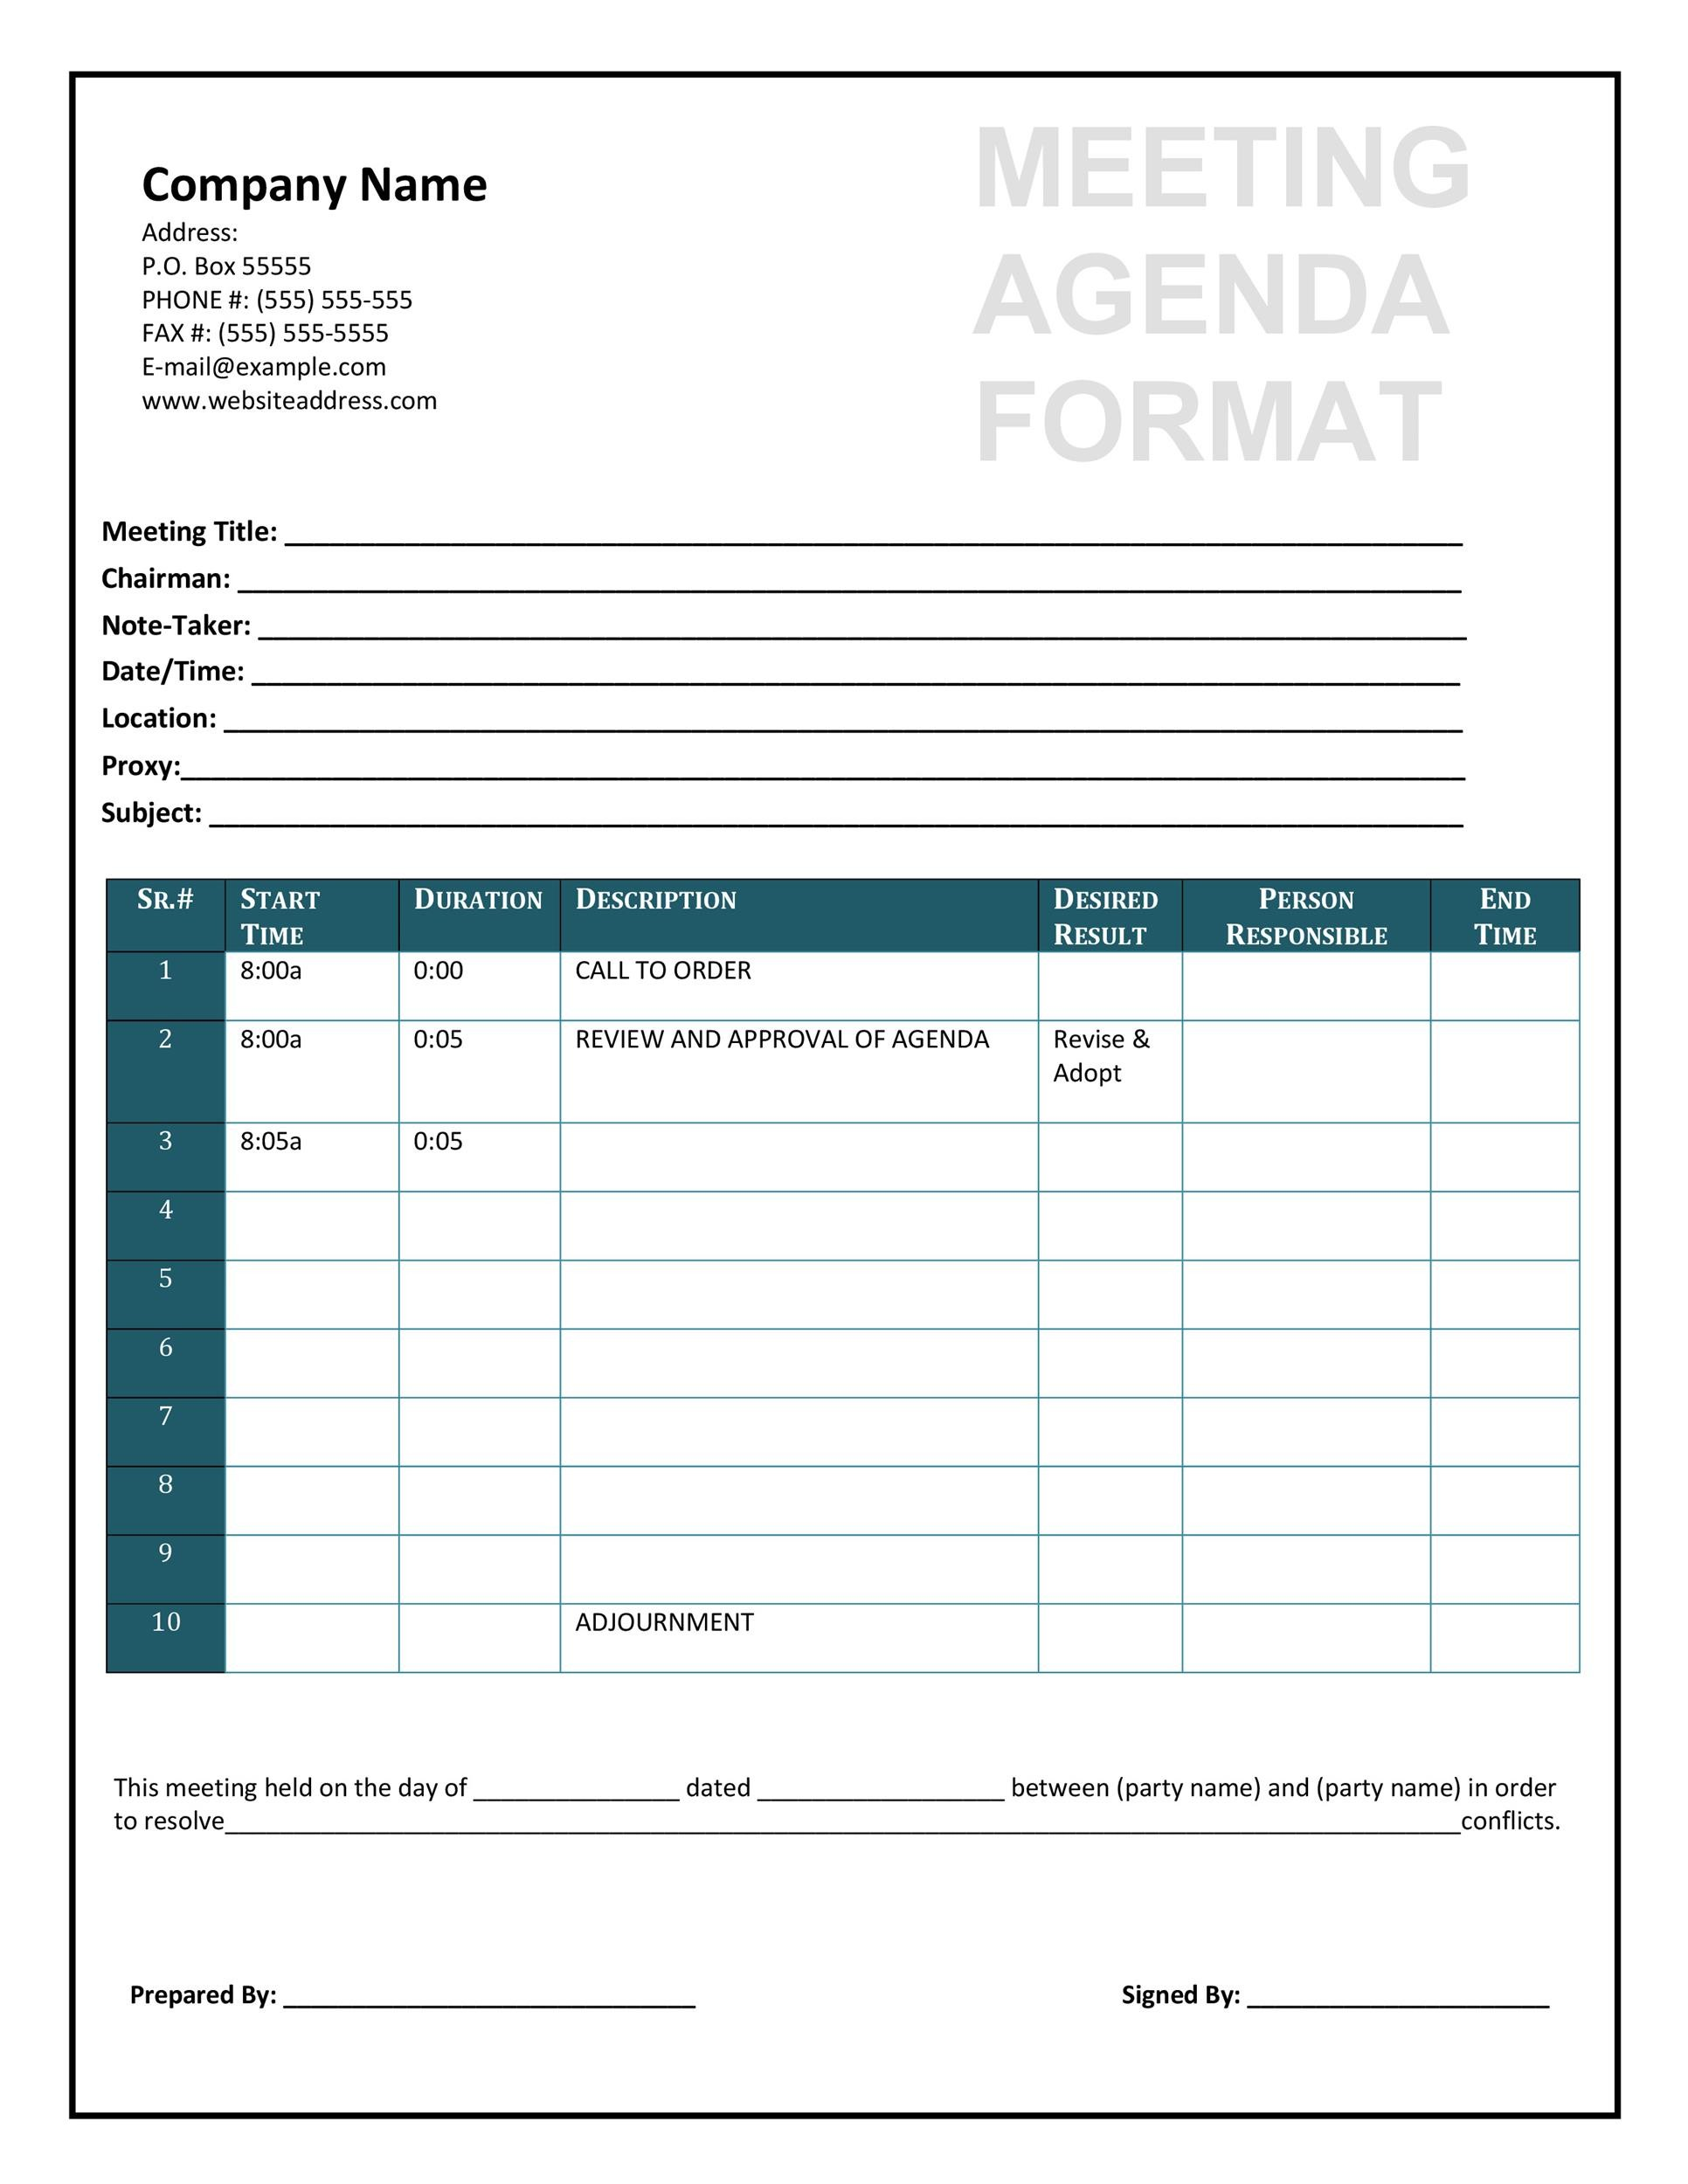 Meeting Agenda Format  WowcircleTk